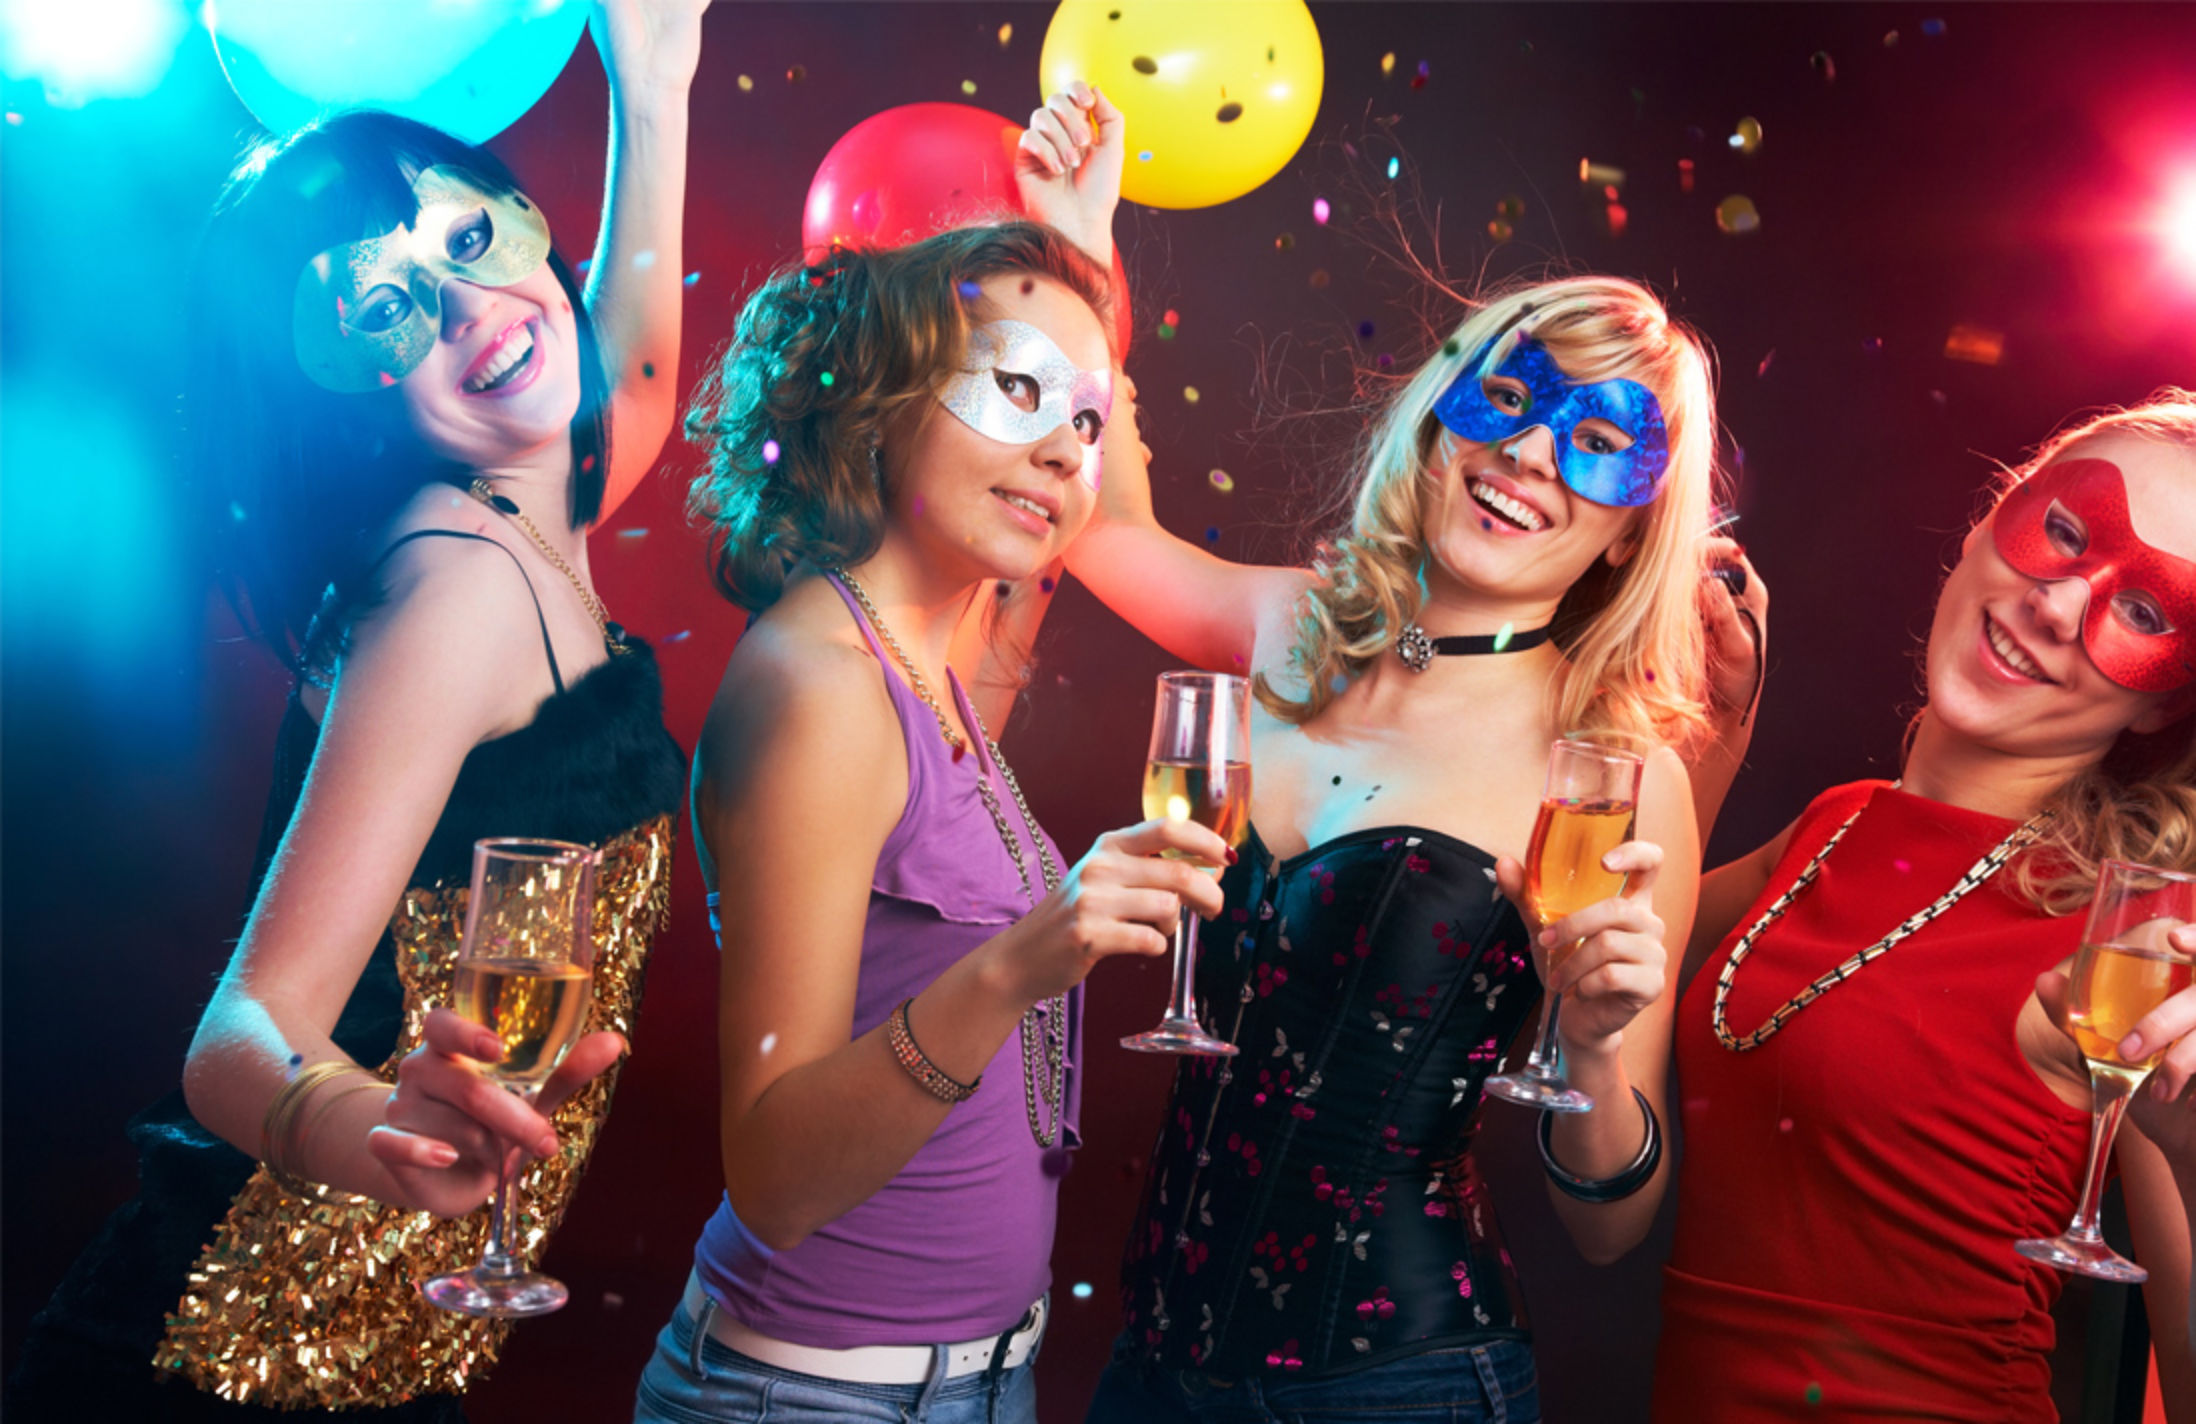 Unusual Hen Party Ideas Uk: Top 25 Hen Party Themes